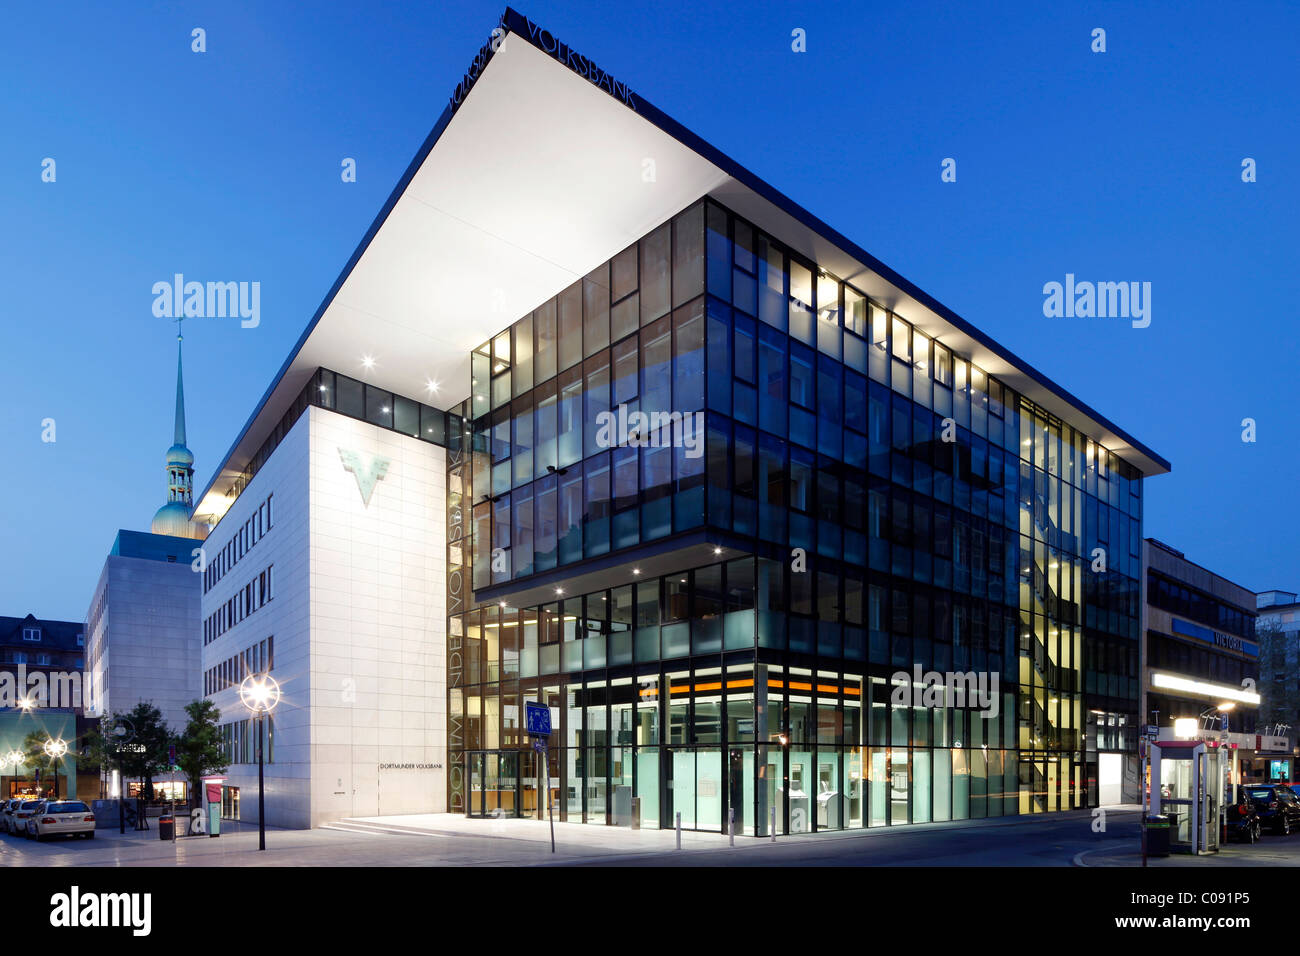 Volksbank Dortmund, Dortmund, Ruhr Area, North Rhine-Westphalia, Germany, Europe - Stock Image